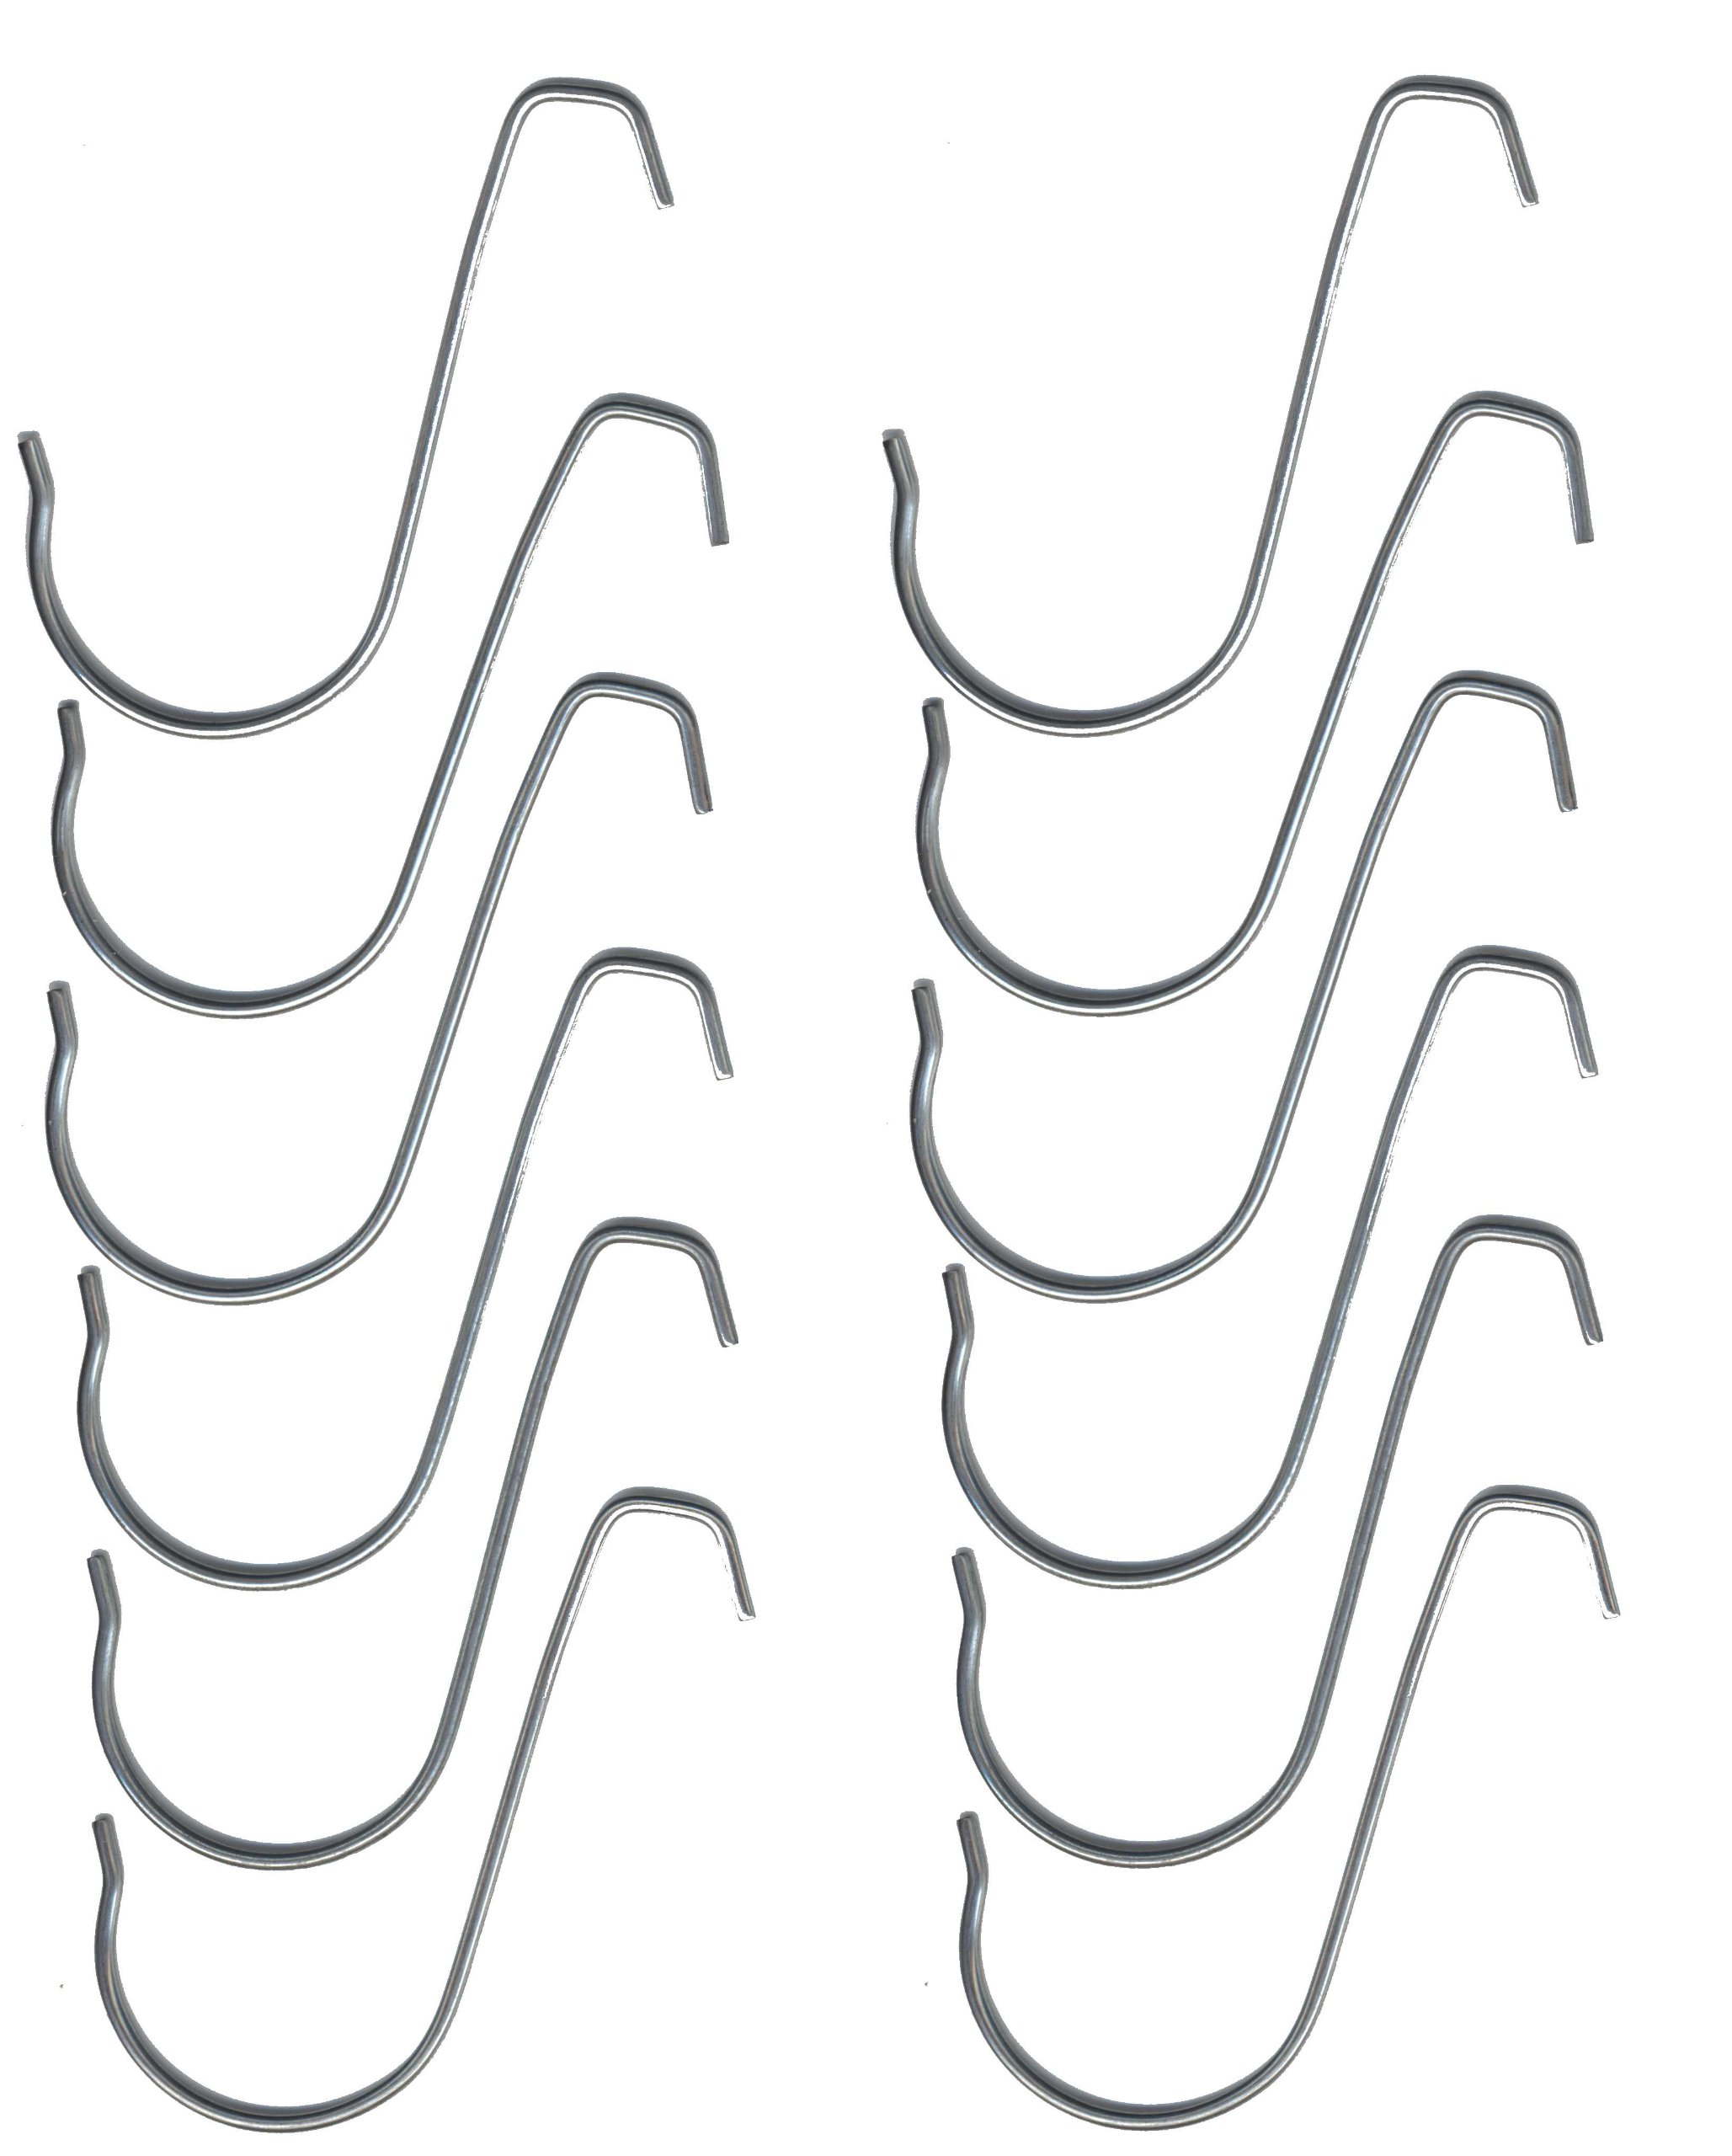 3 inch Exhibit / Conference Hook (Pack of 12 S-hooks)